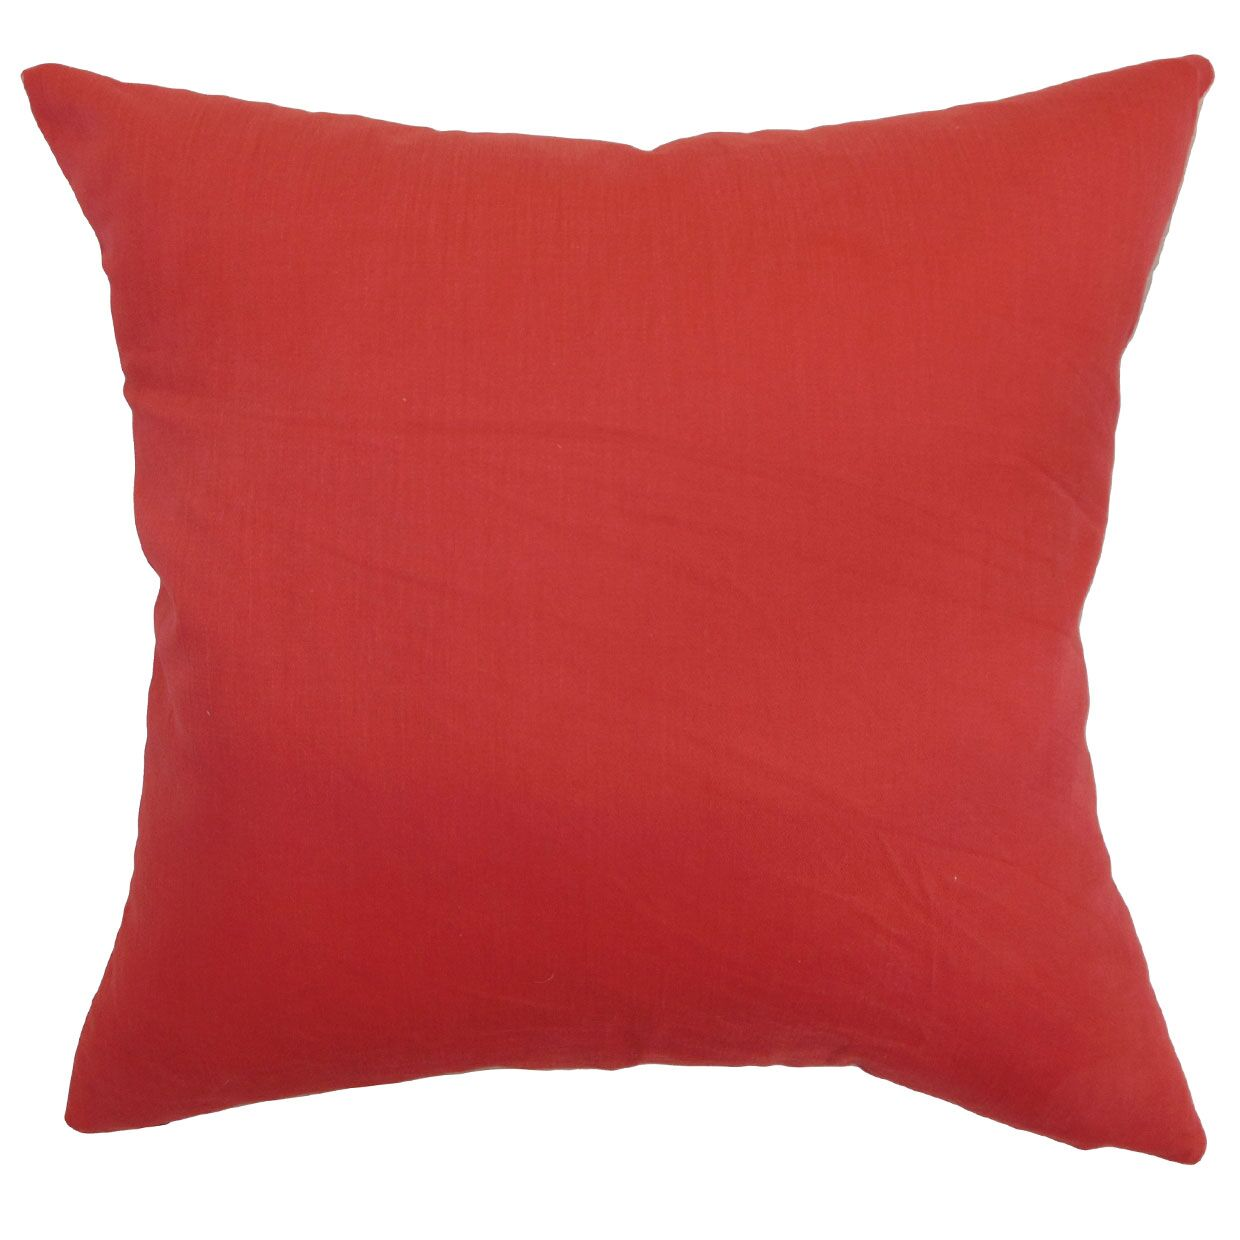 Doolan Plain Floor Pillow